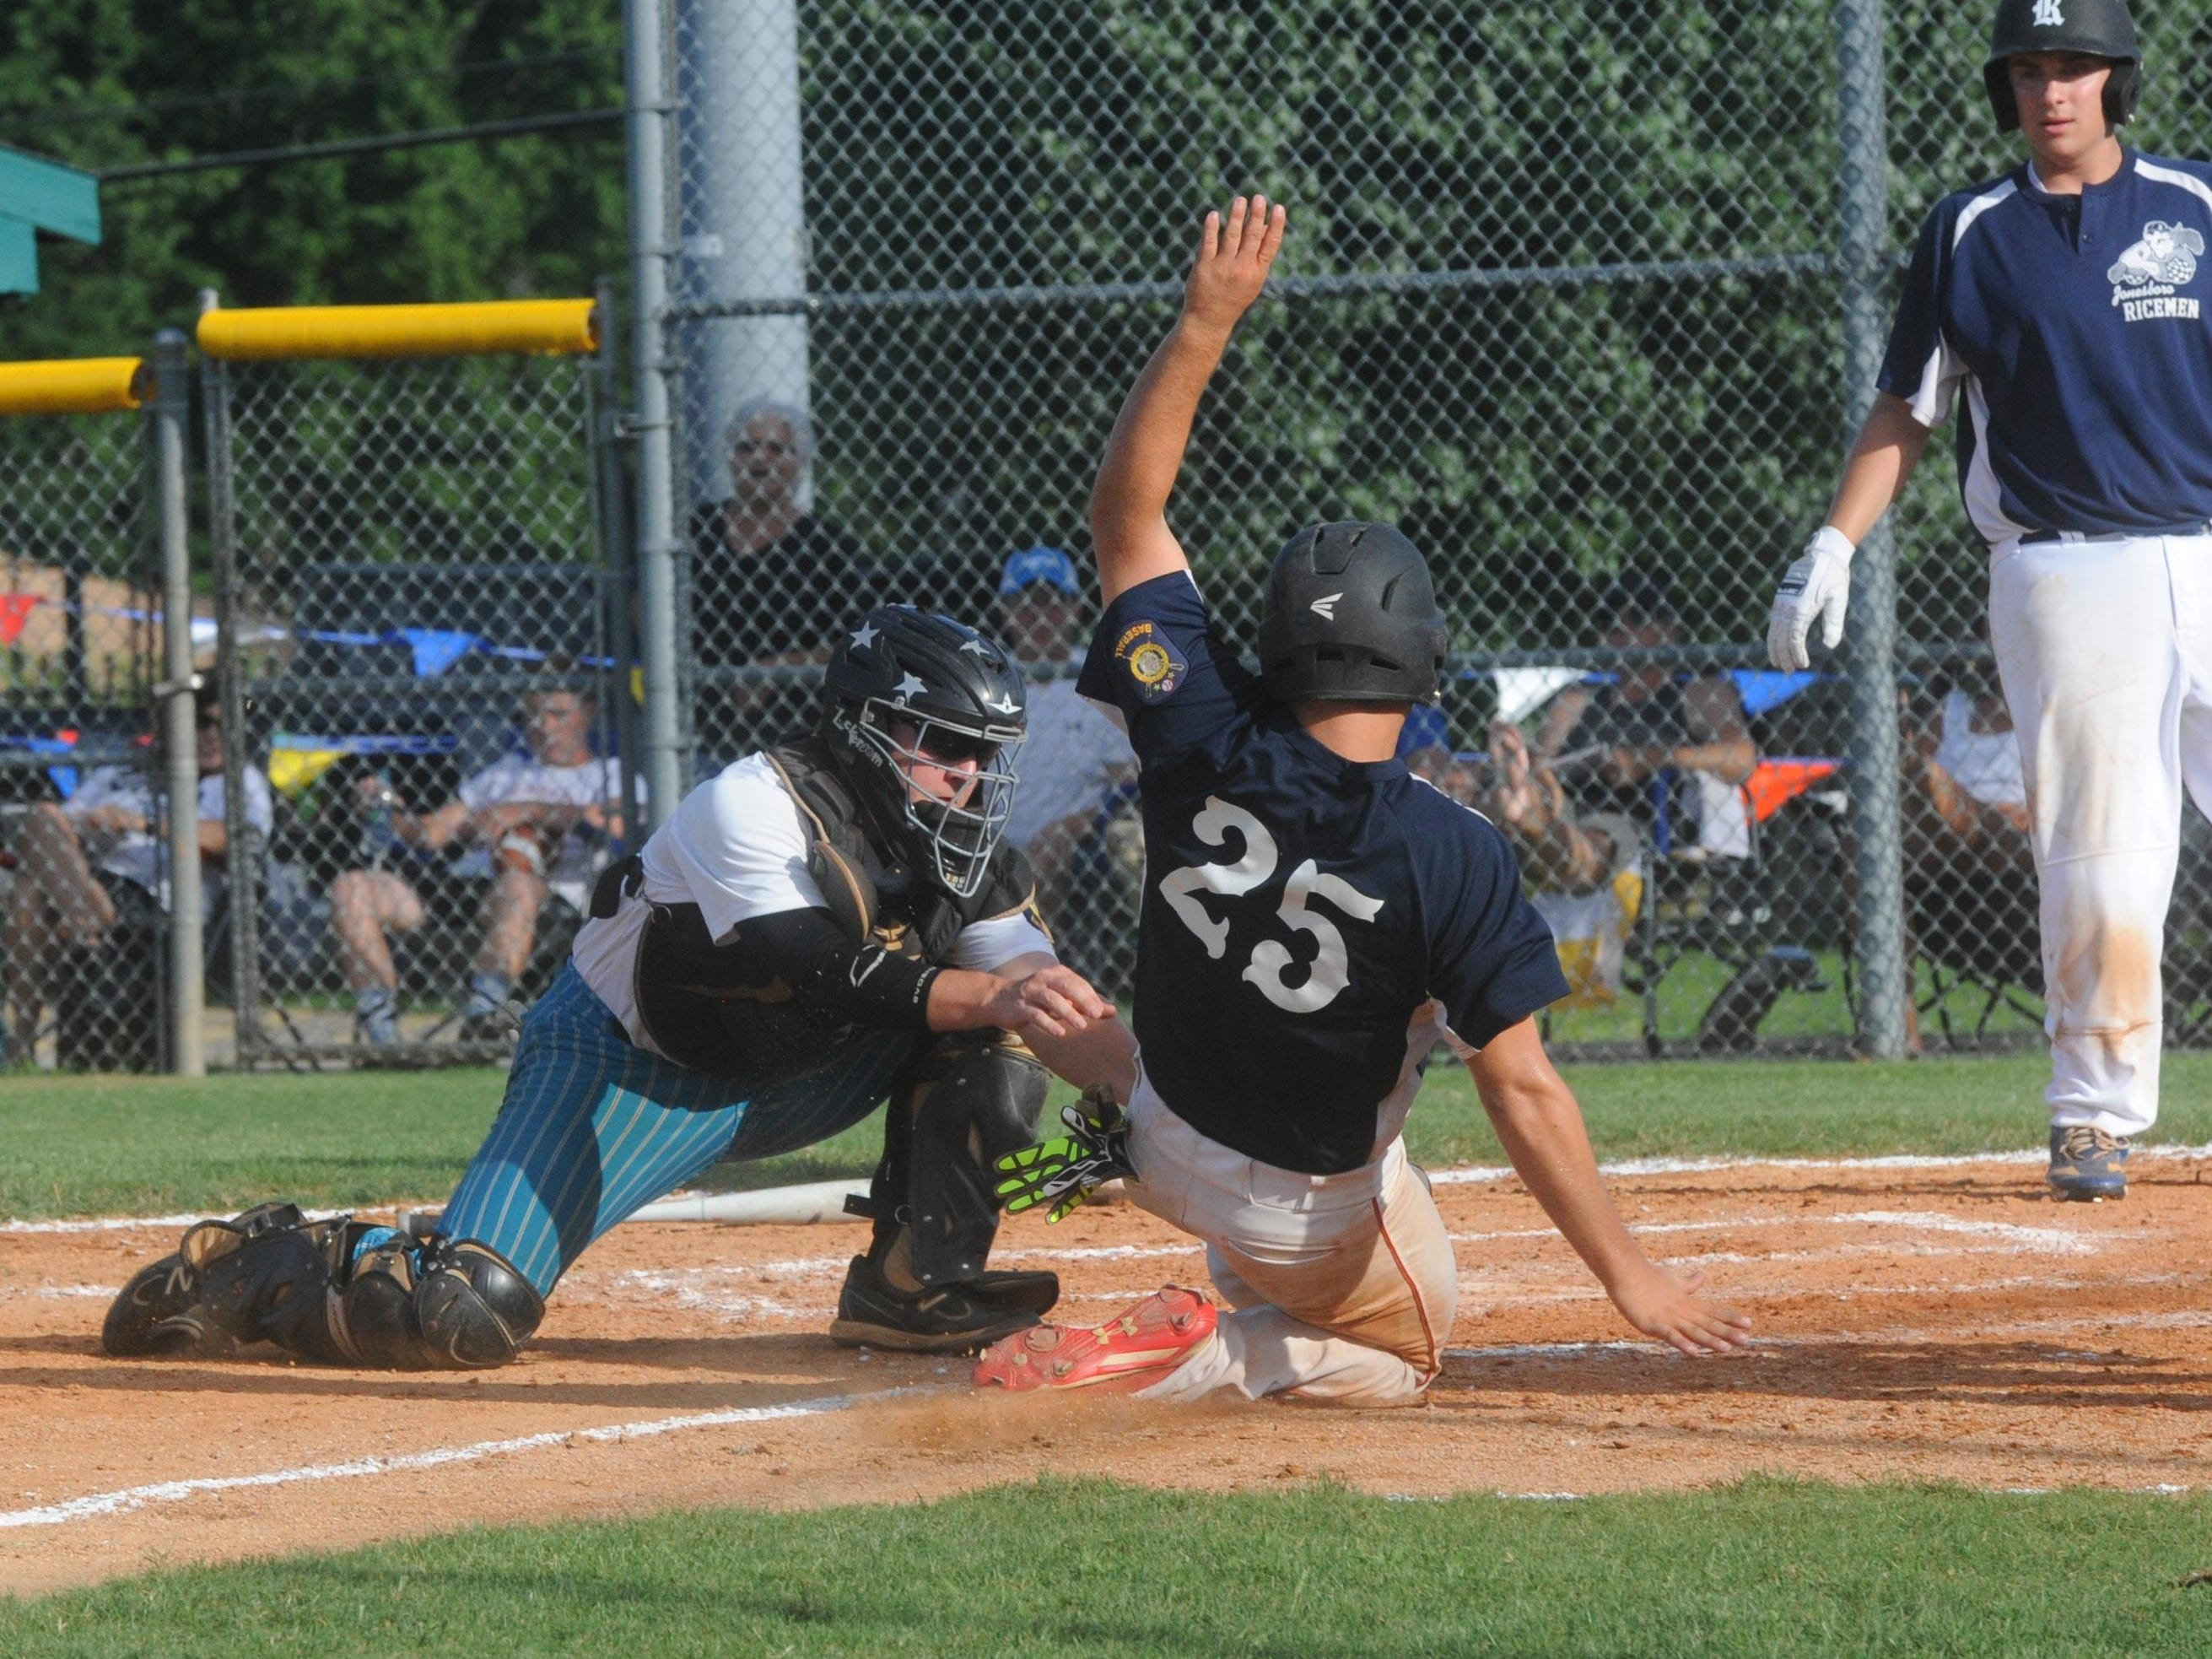 Lockeroom catcher Brody Ninemire, left, tags out Jonesboro's Trey Hall at home plate during Mountain Home's 8-0 loss to the Ricemen on Saturday at Cooper Park.